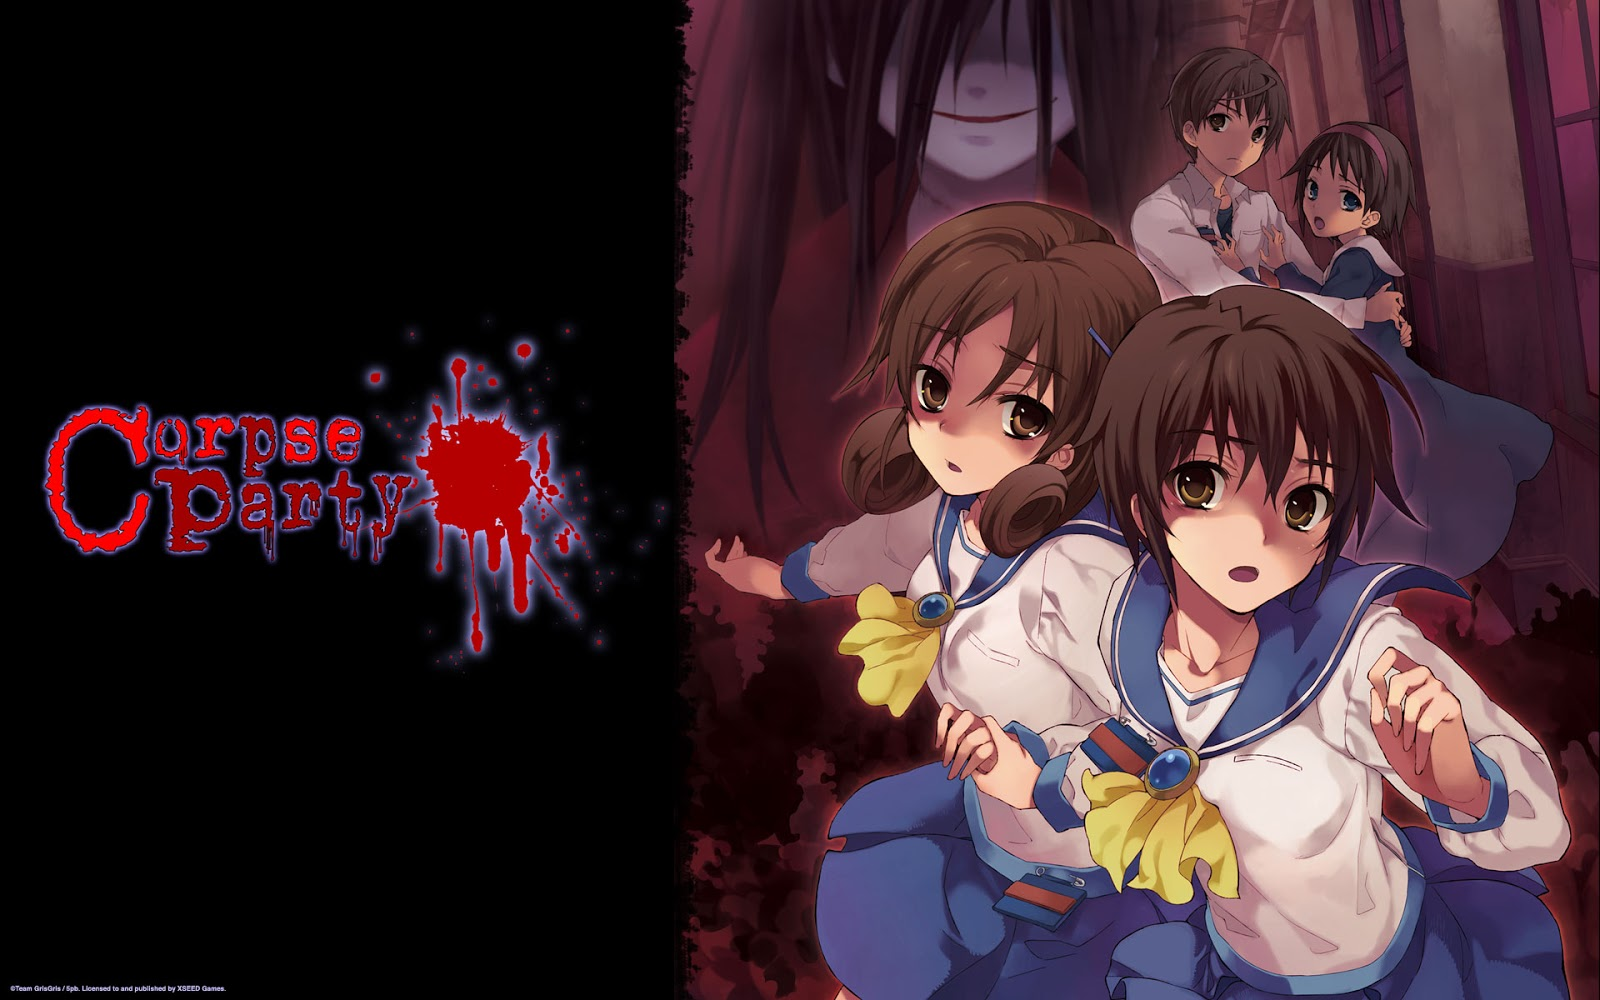 Corpse party episode 1 4 subtitle indonesia